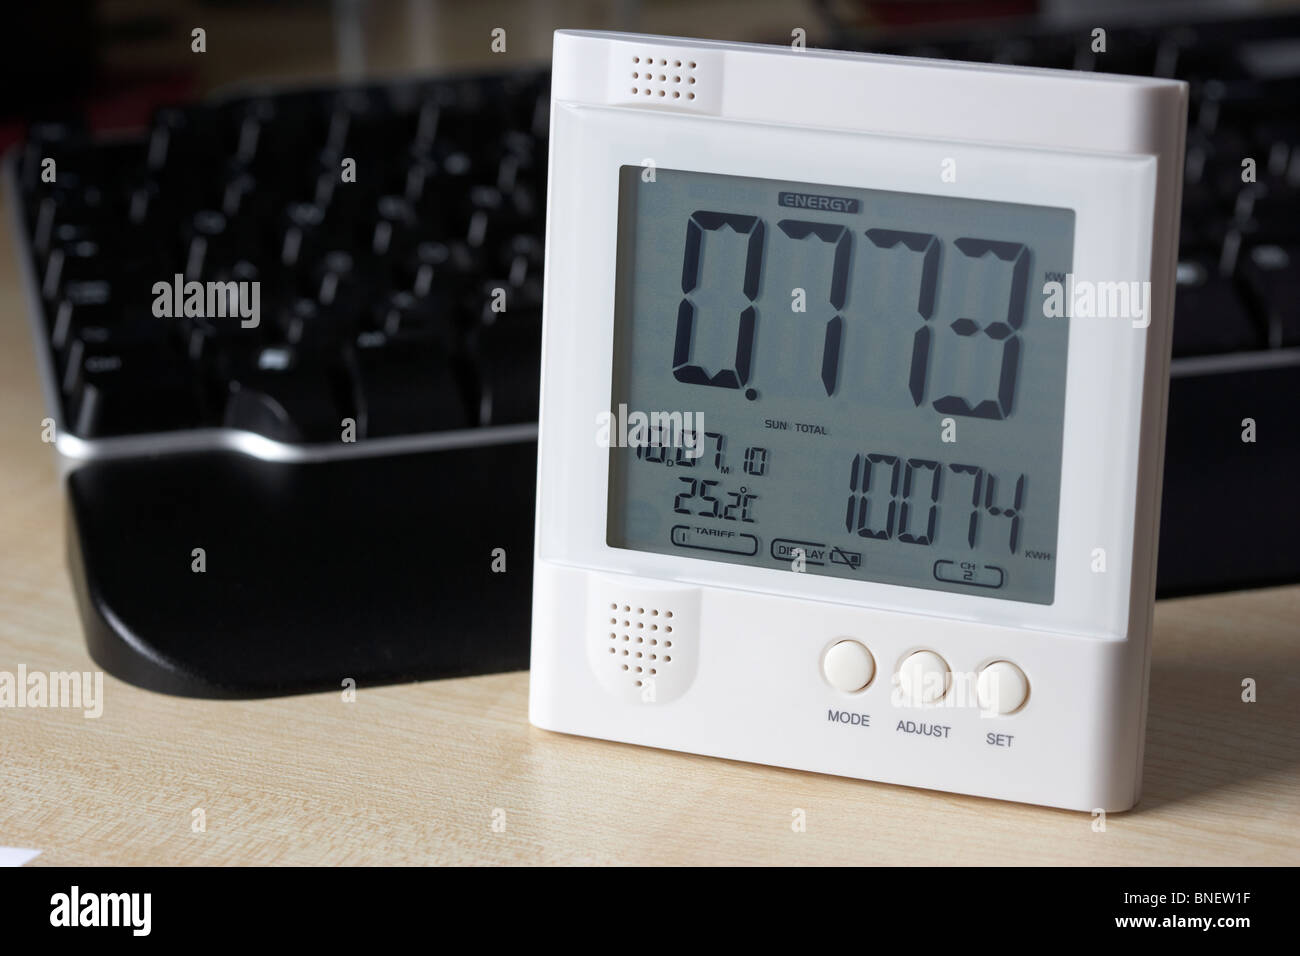 using a wireless electricity monitor to monitor electricity usage in a home office environment in the uk - Stock Image